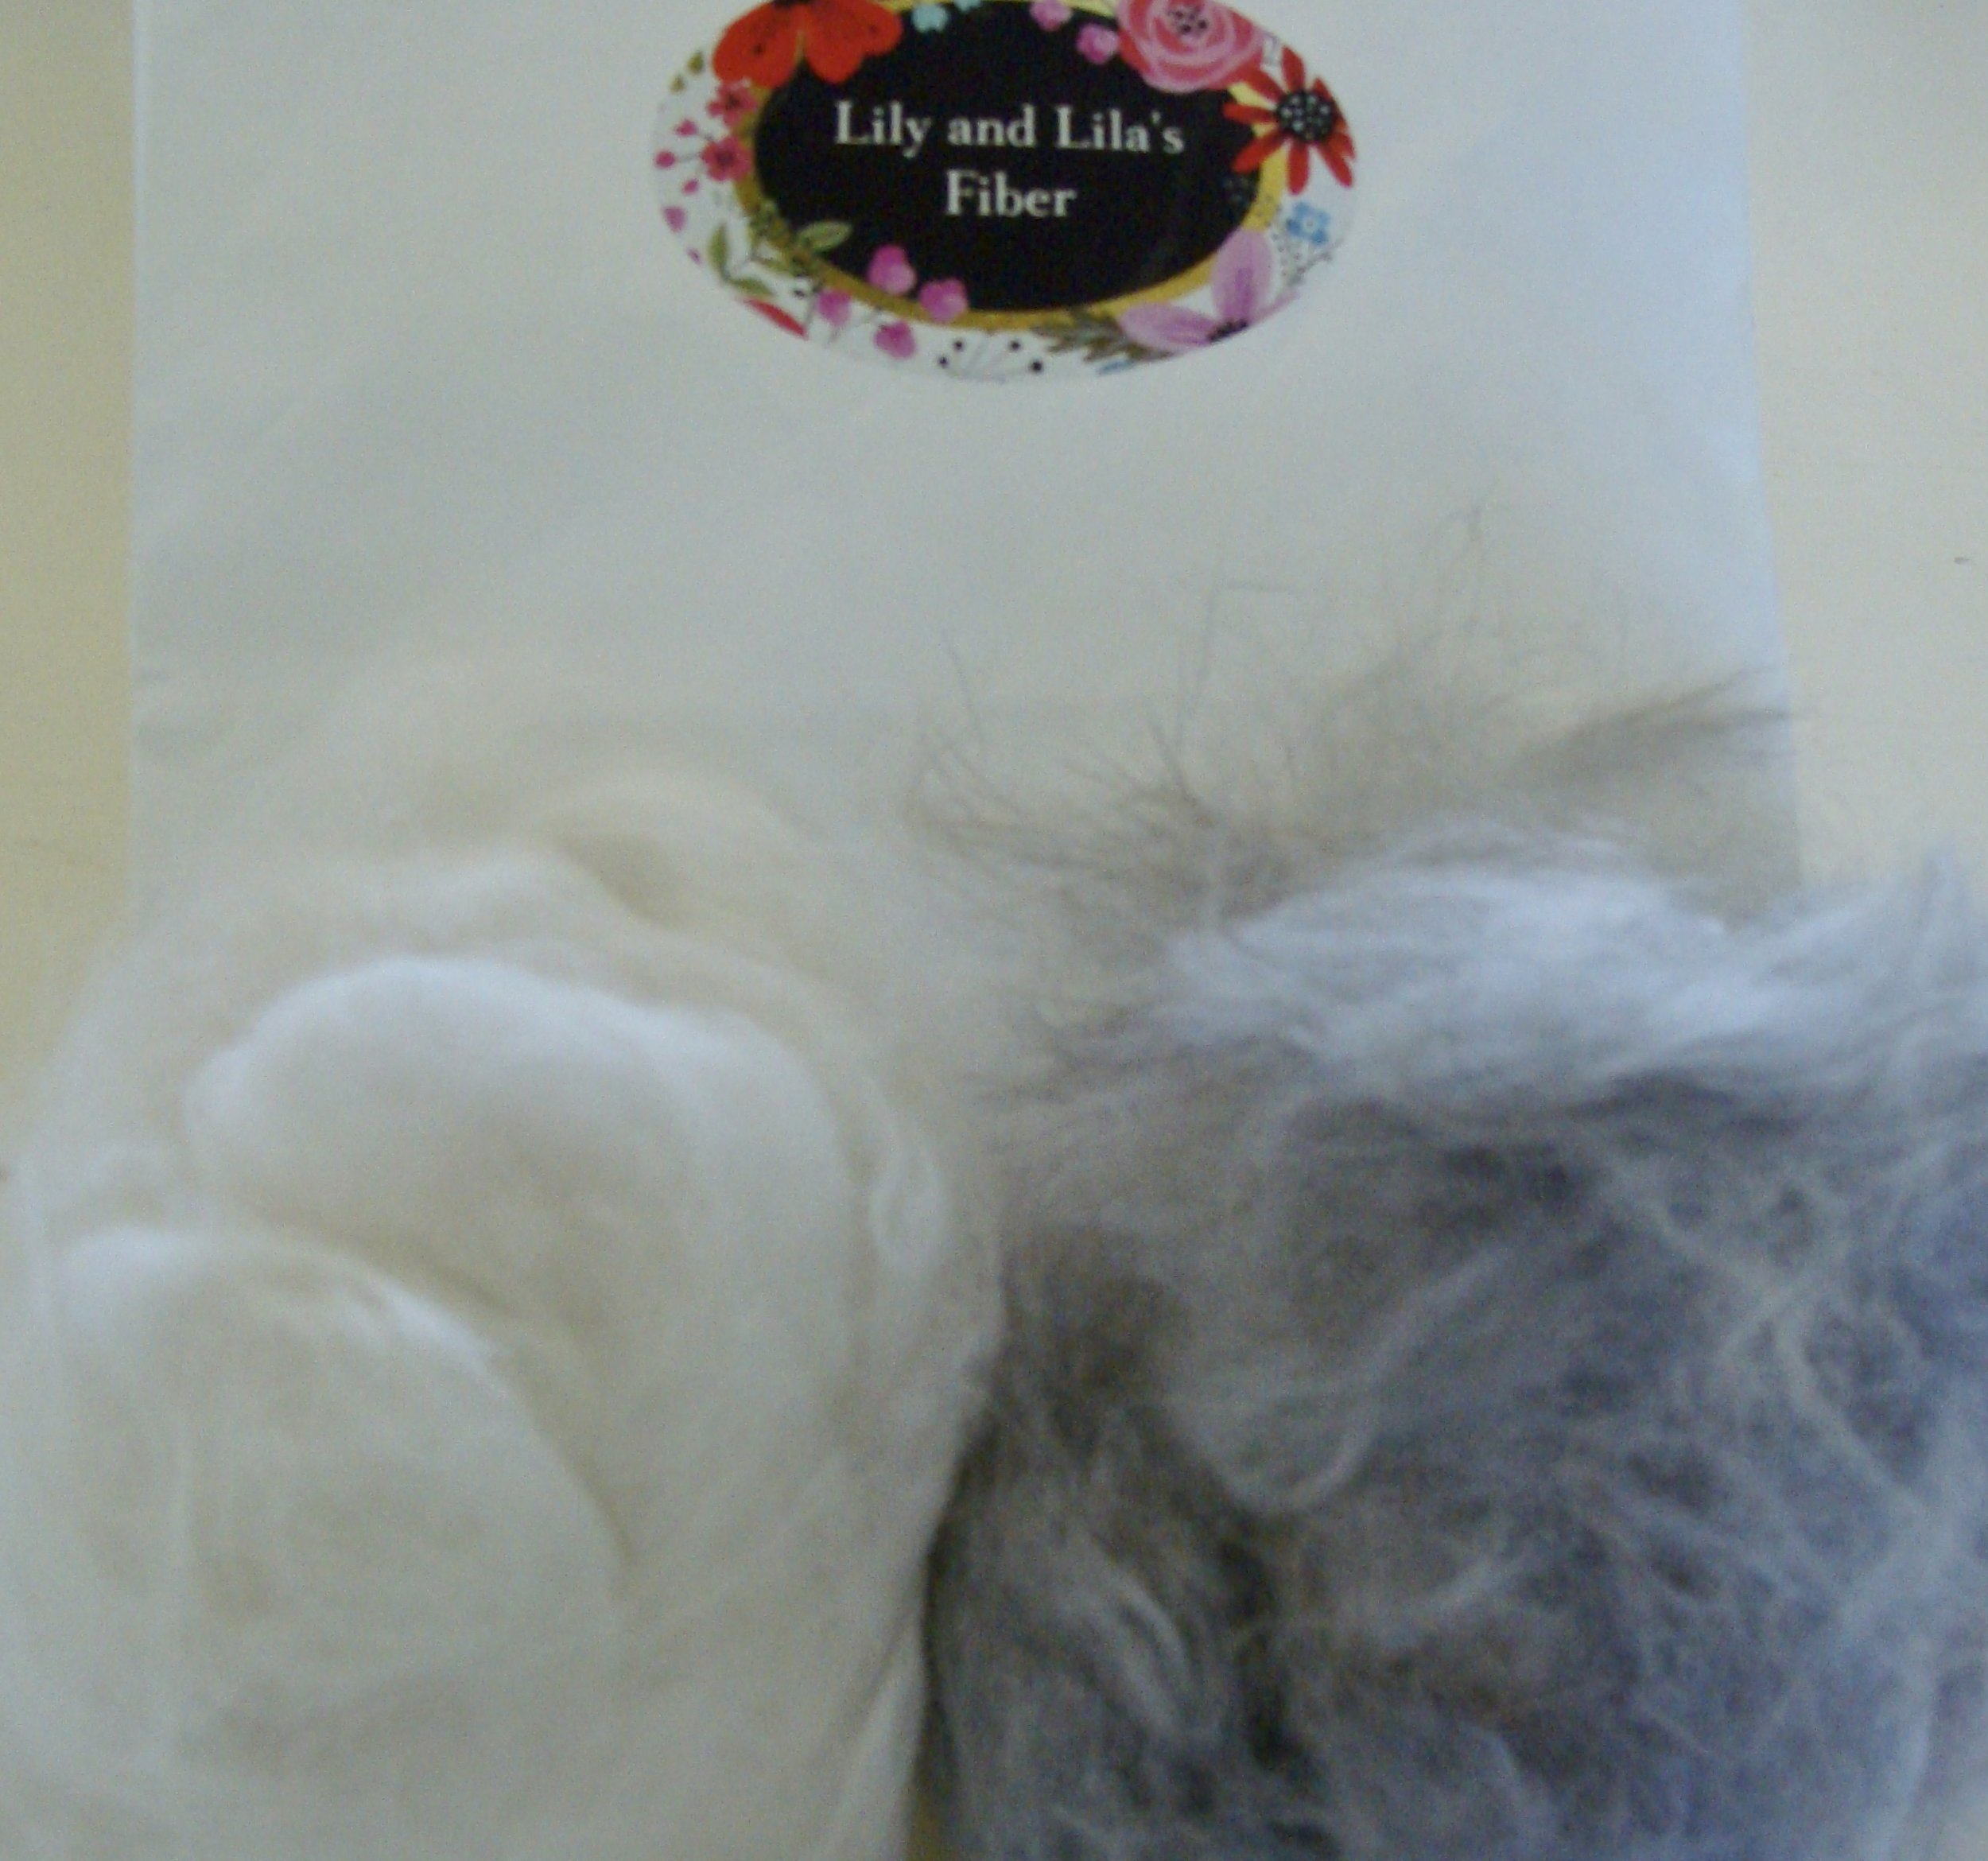 Lily and Lila's Fiber